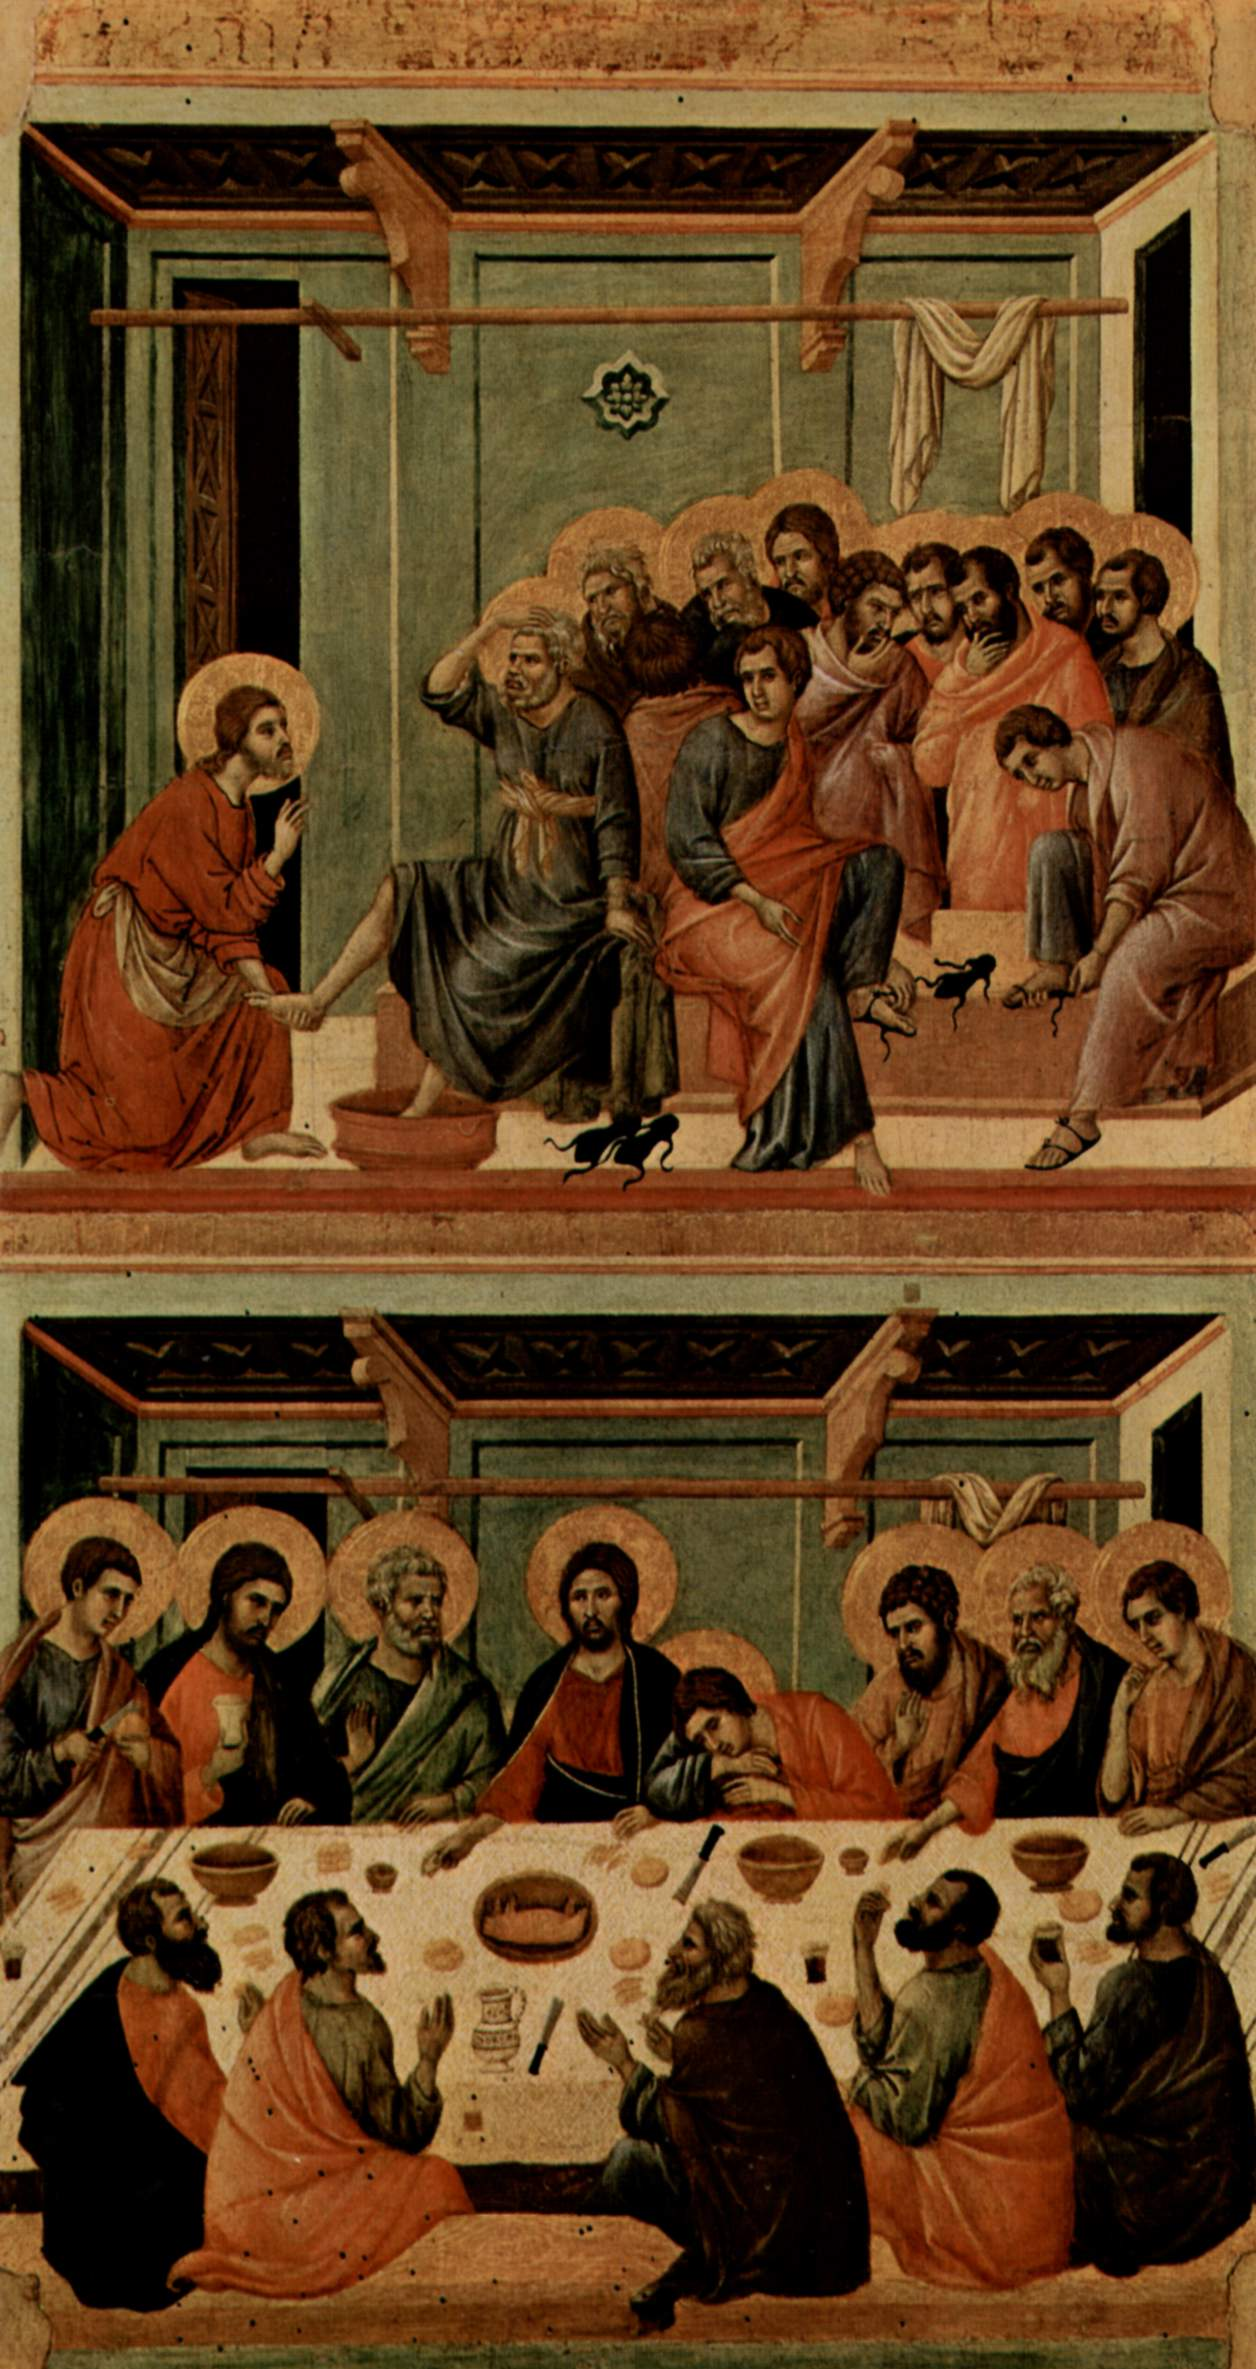 http://upload.wikimedia.org/wikipedia/commons/b/b1/Duccio_di_Buoninsegna_029.jpg